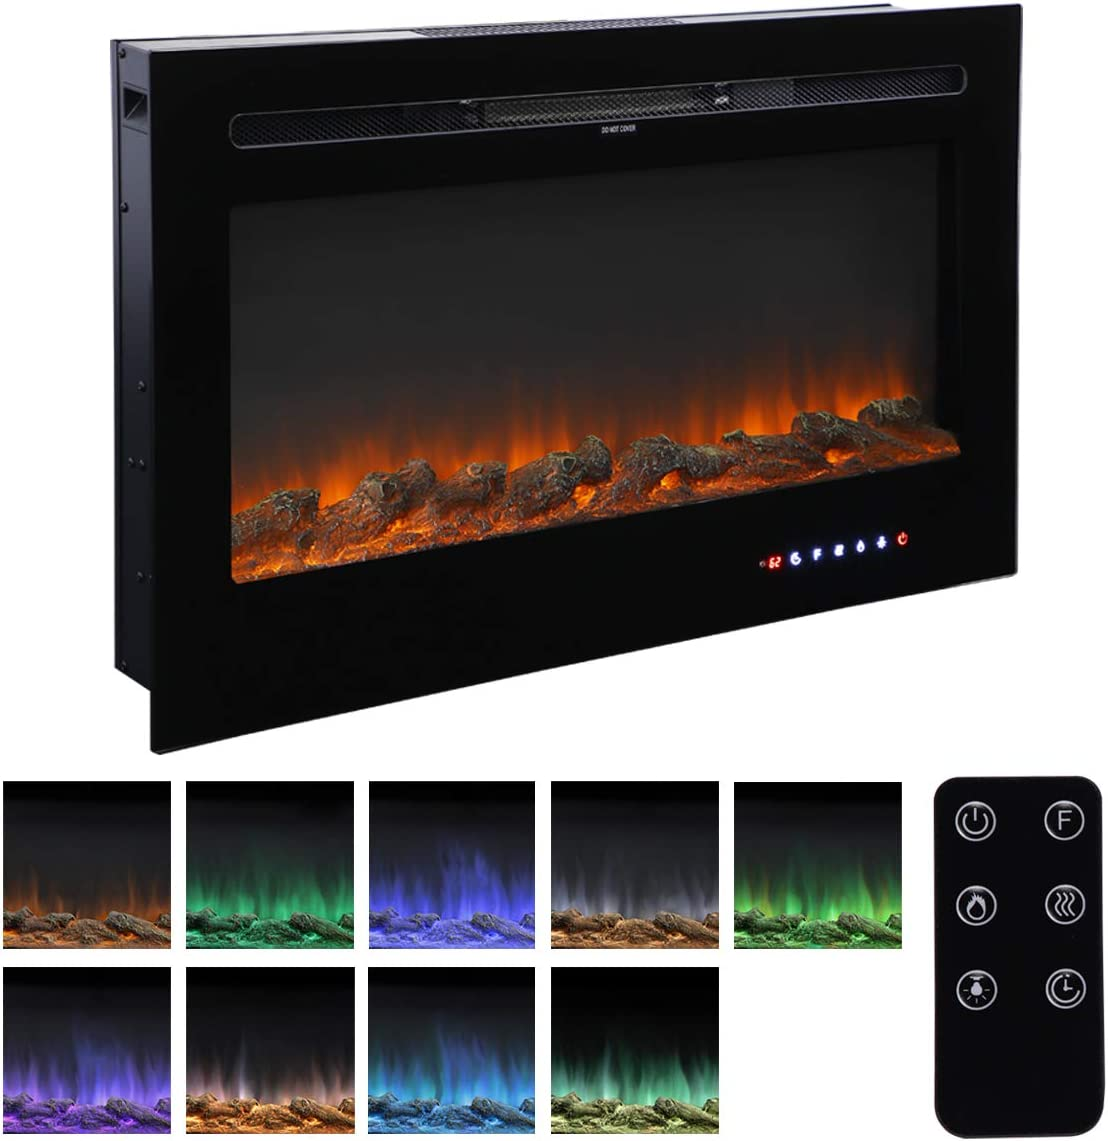 """Homedex 36"""" Recessed Mounted Electric Fireplace Insert with Touch Screen Control Panel, Remote Control, 750/1500W, Black"""